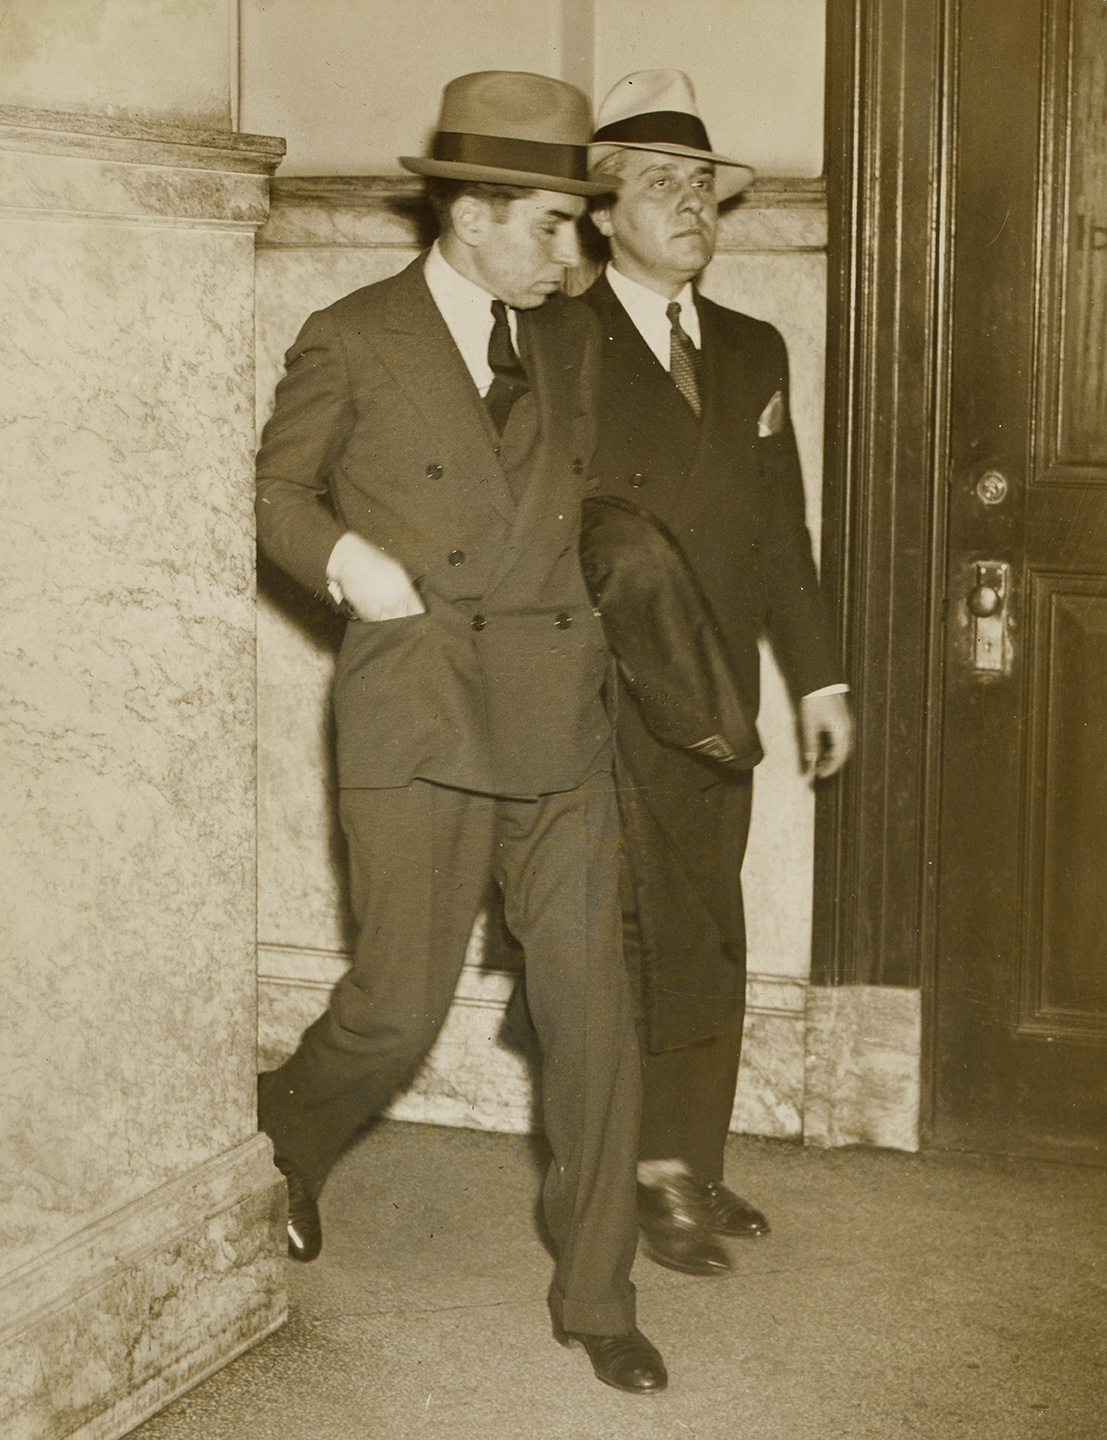 Lucky Luciano (left) enters police headquarters with detective on arrival from Little Rock, April 18, 1936. NYC Municipal Archives Collection.